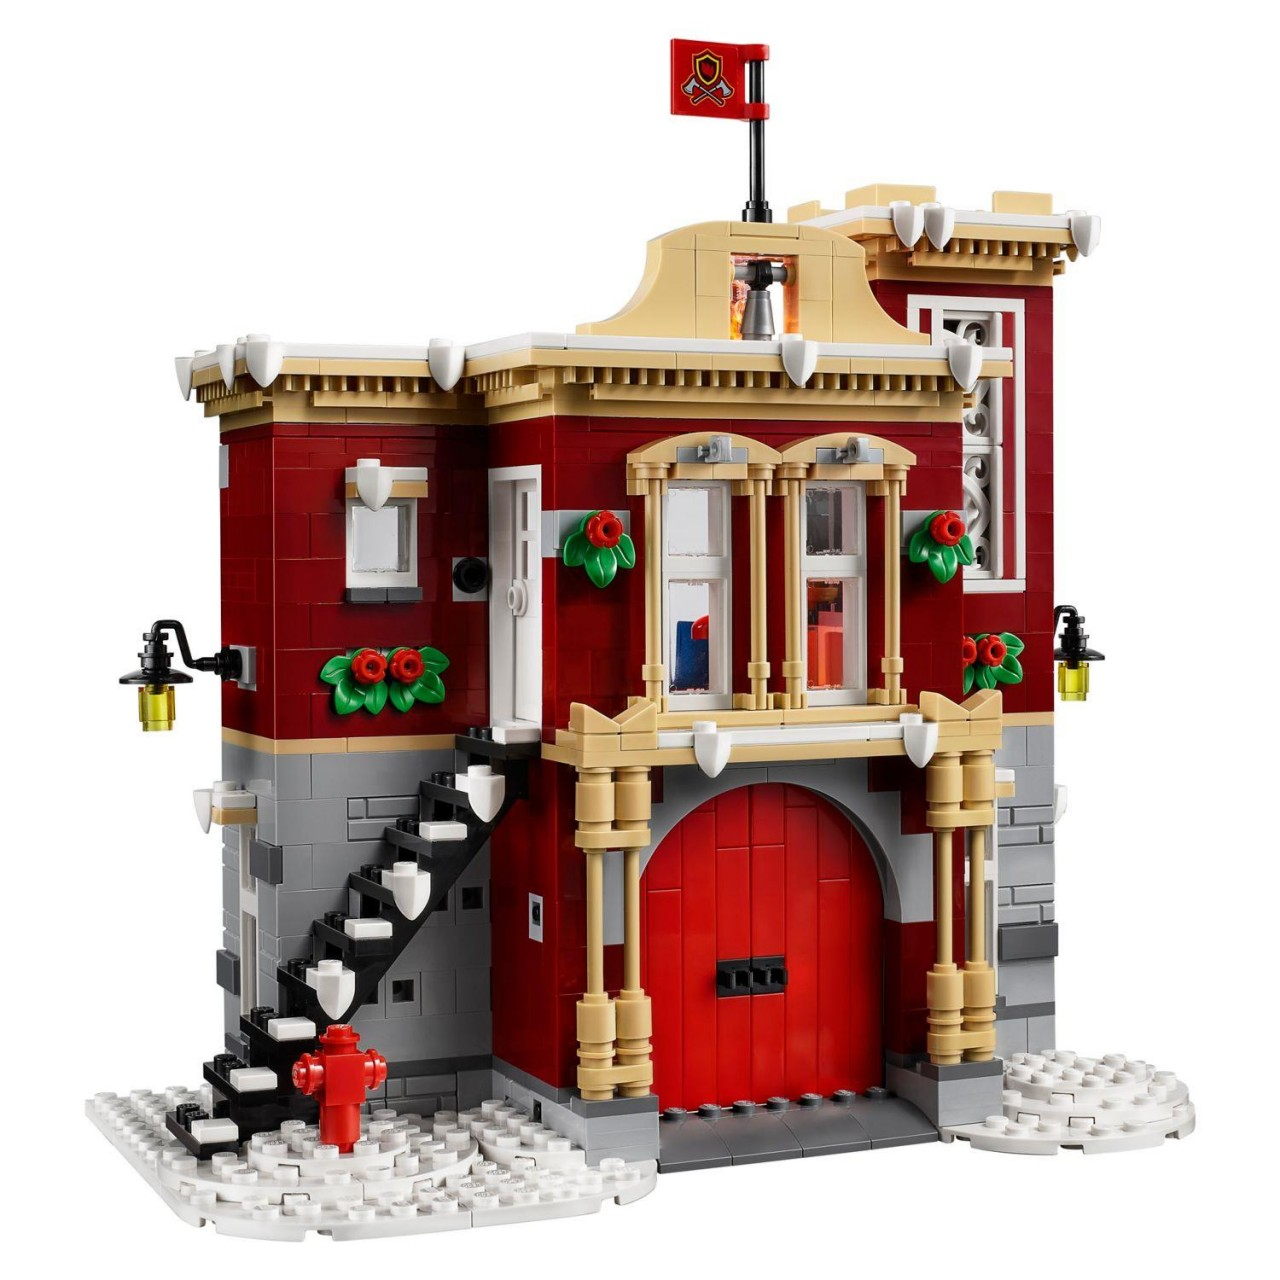 LEGO CREATOR 10263 Winter Village Fire Station